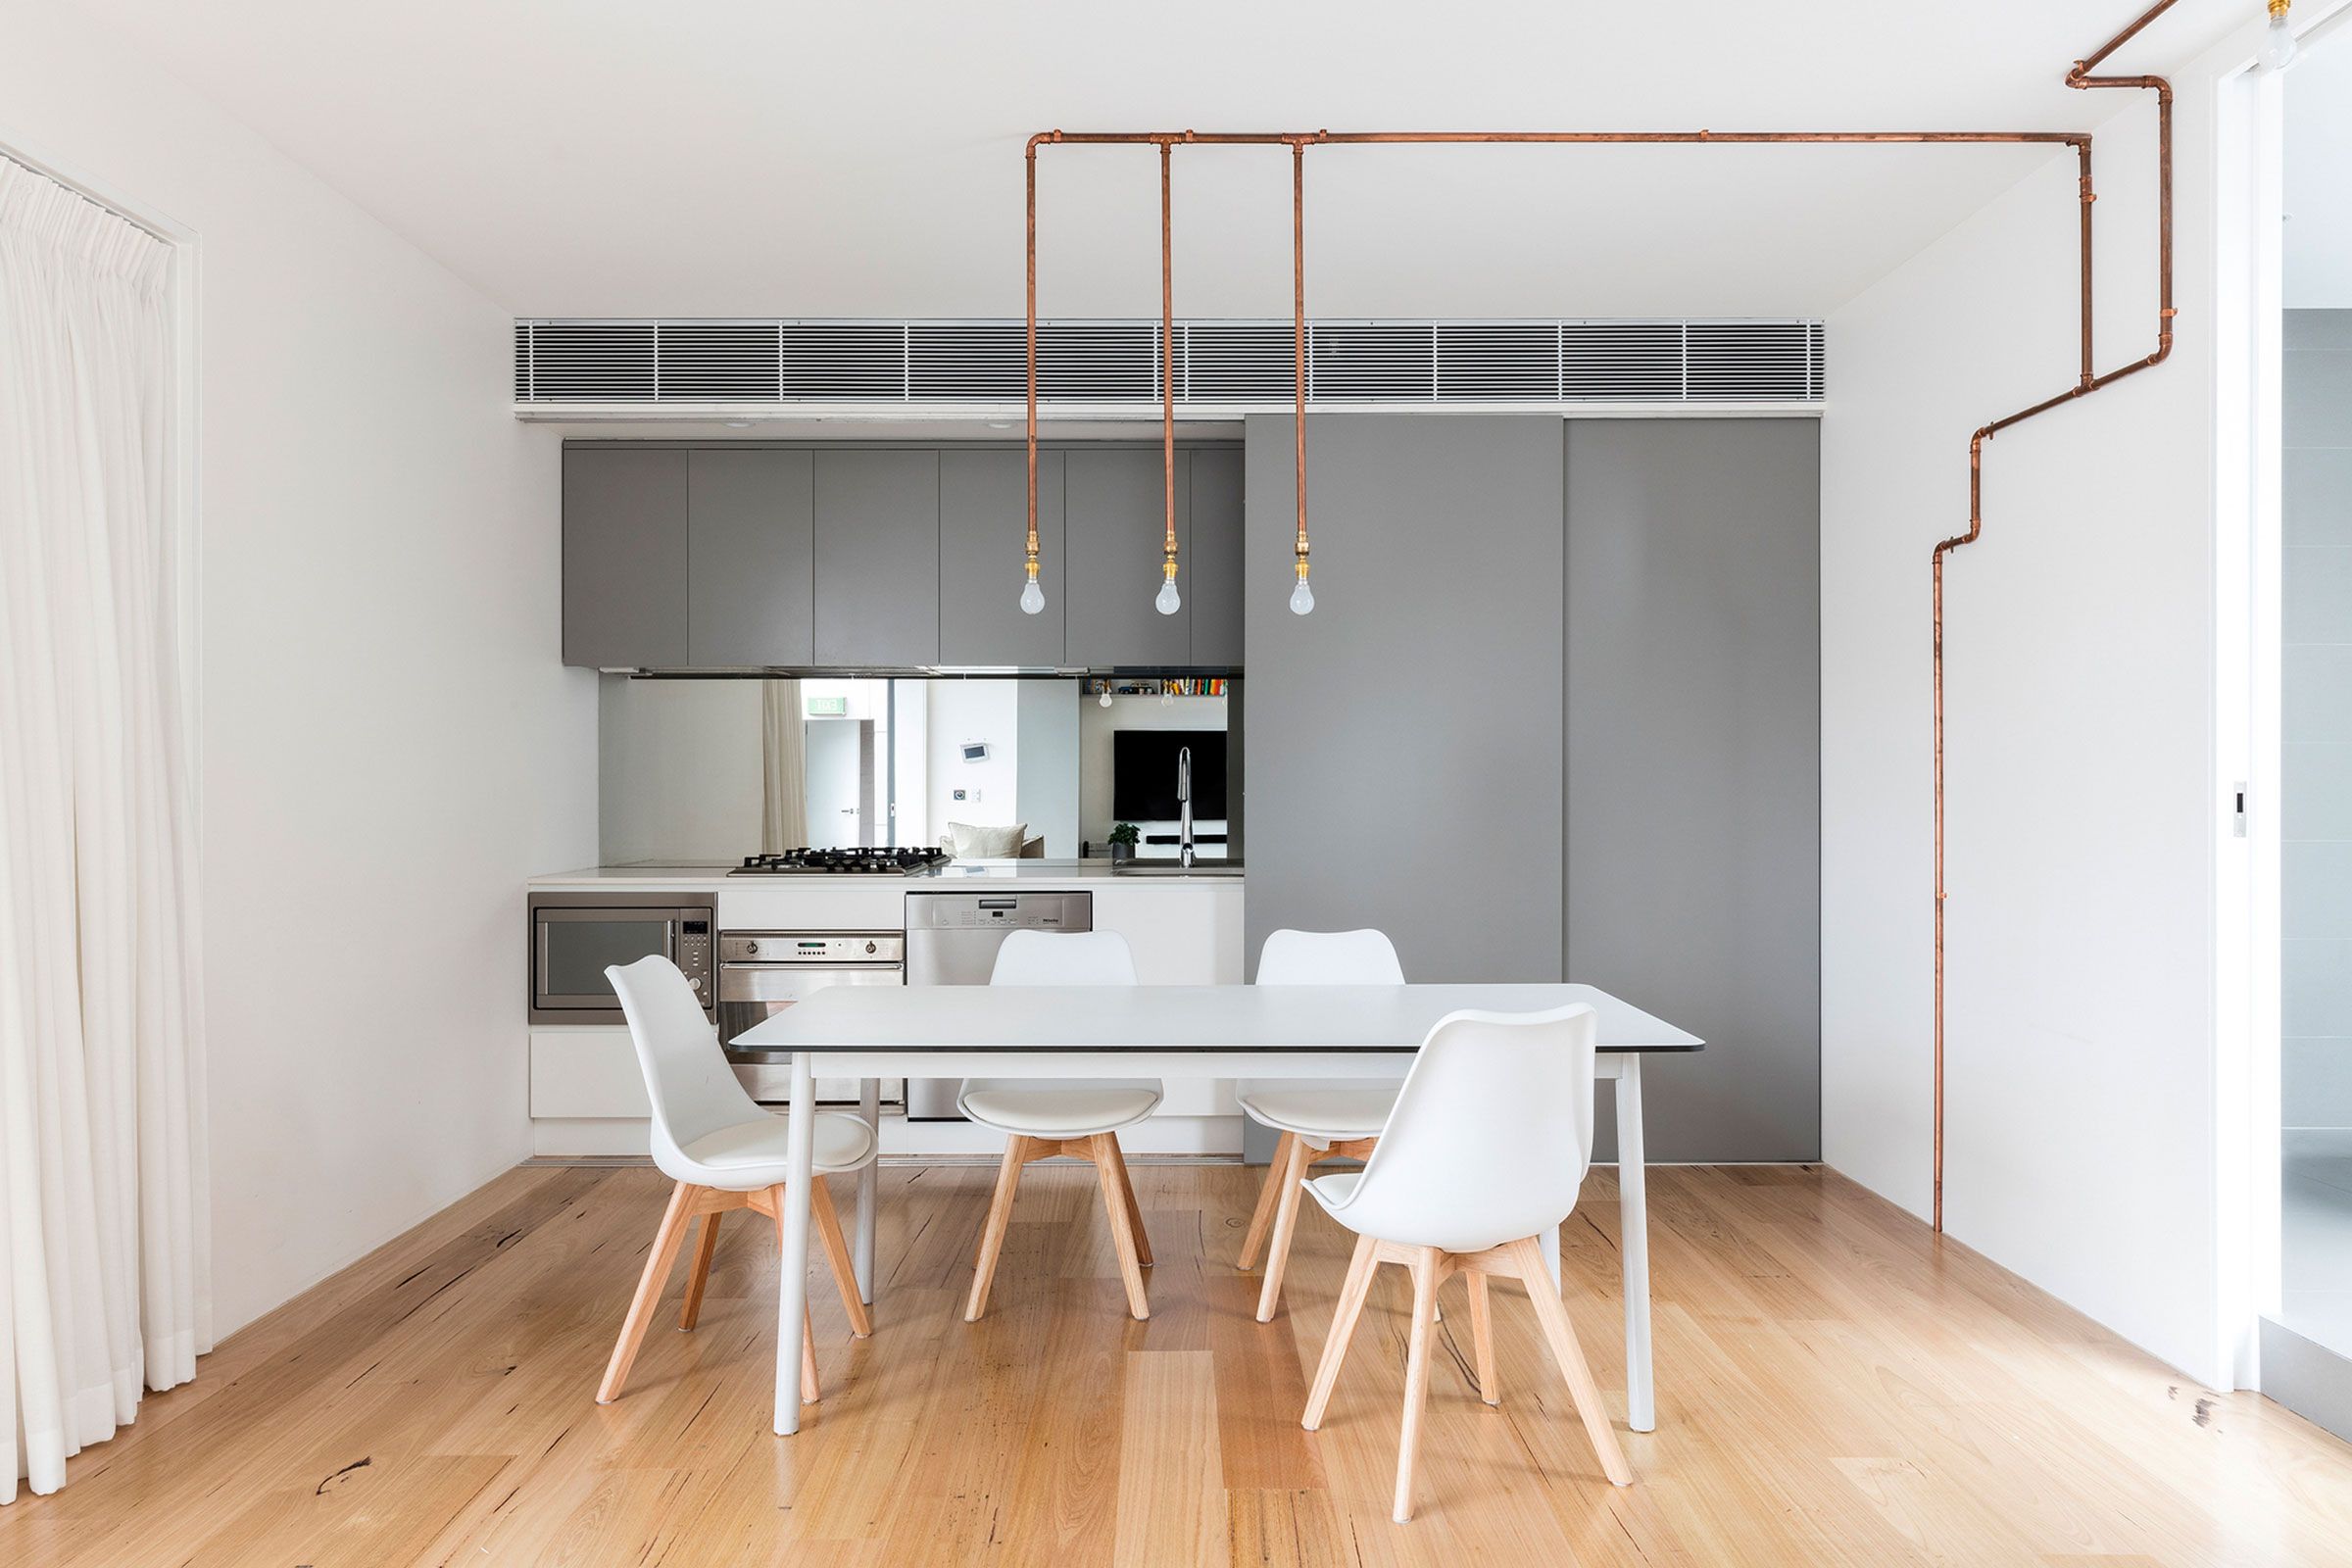 5 Well-Designed Australian Kitchens